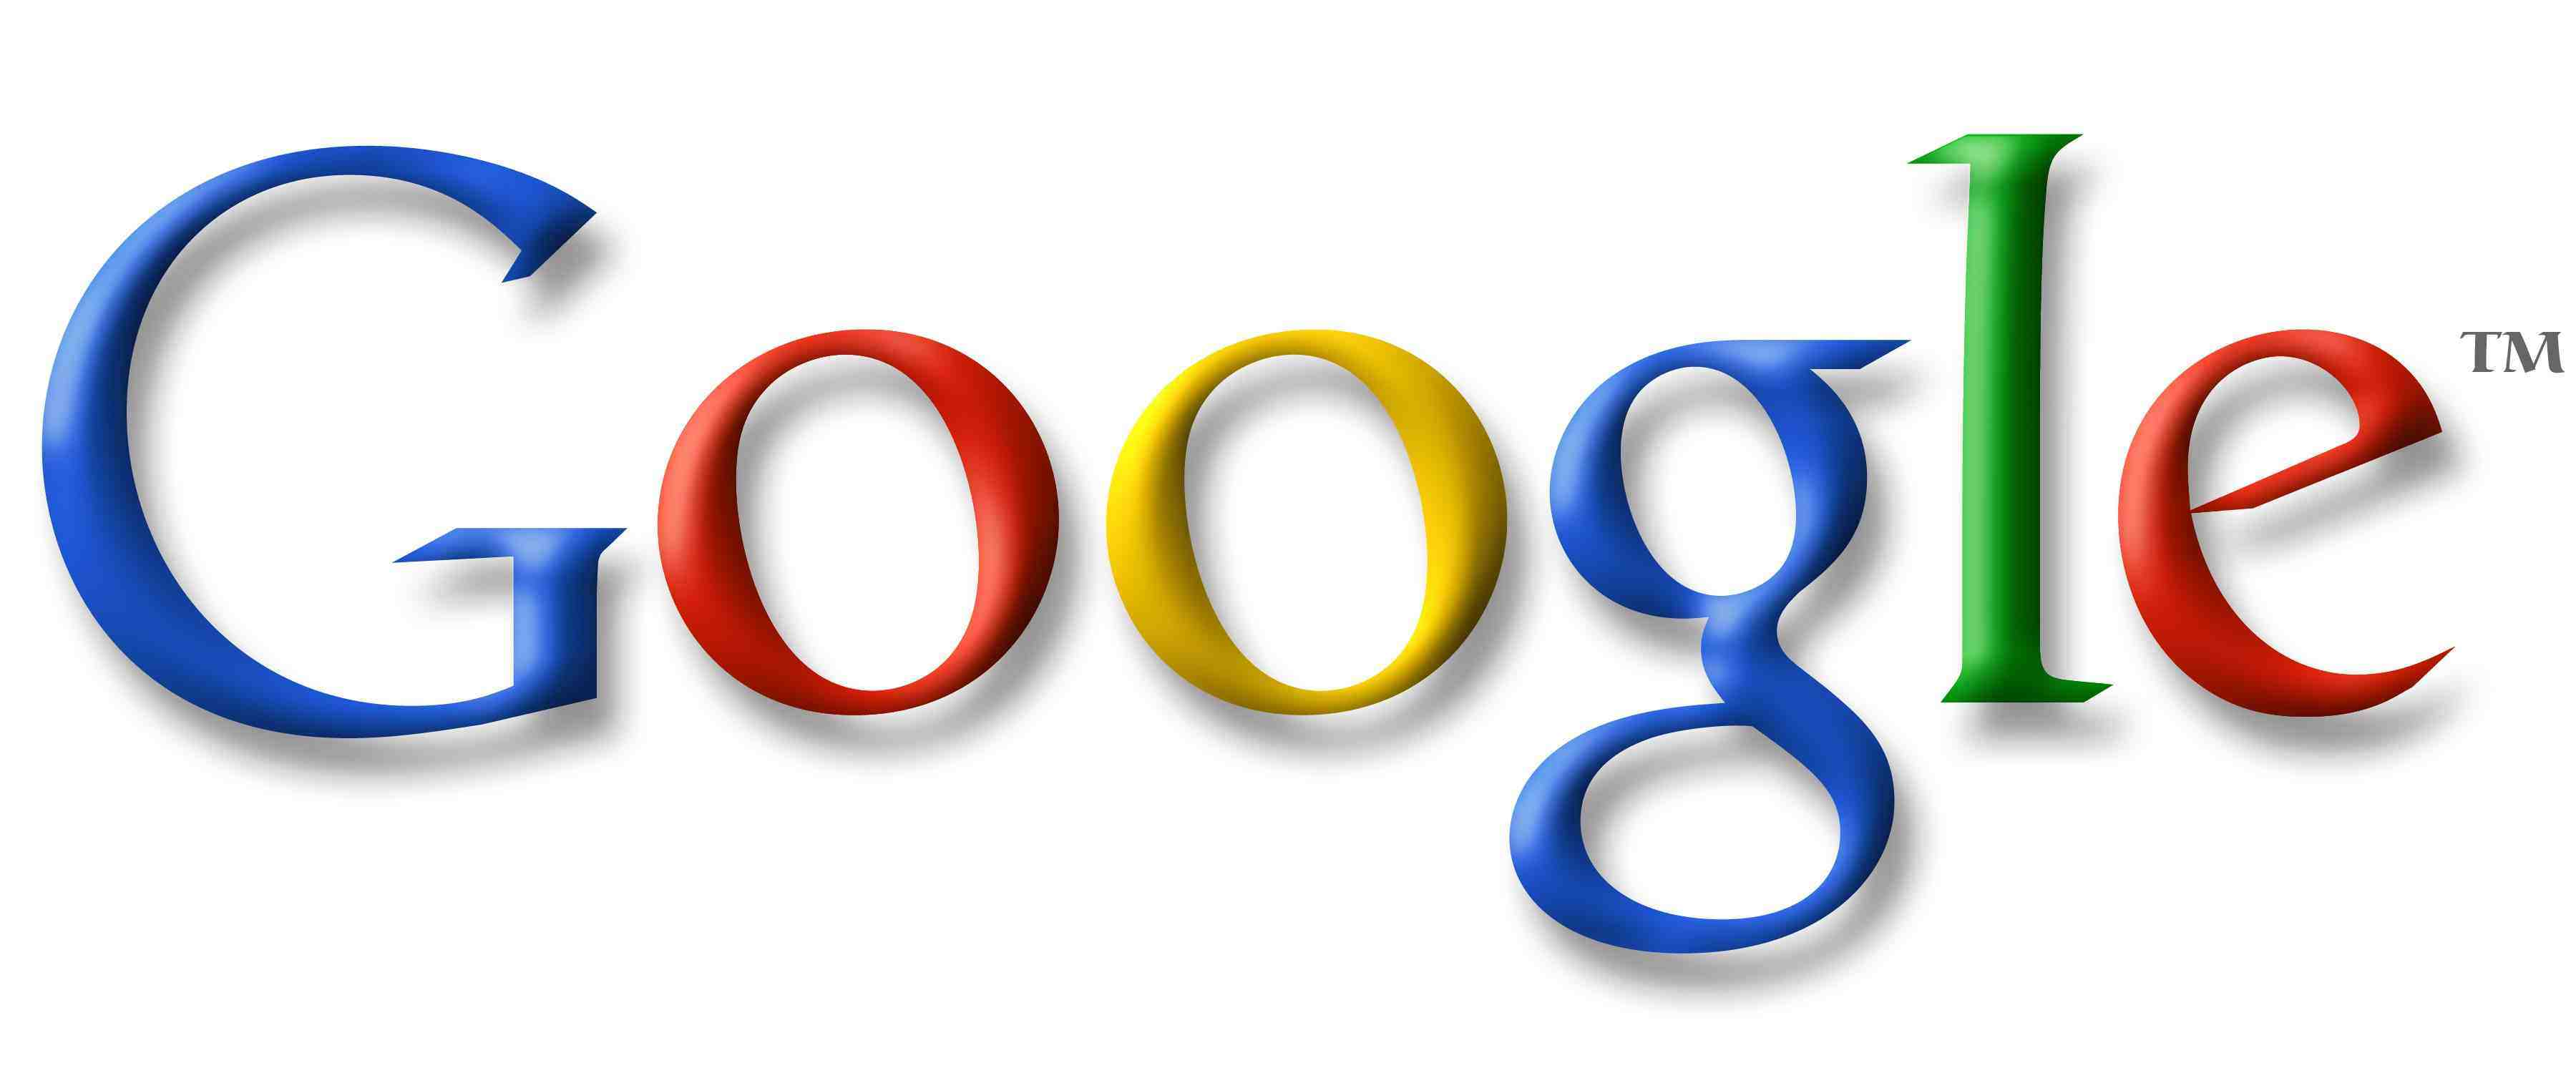 Google Logo Free Images At Clker Com Vector Clip Art Online Royalty Free Public Domain